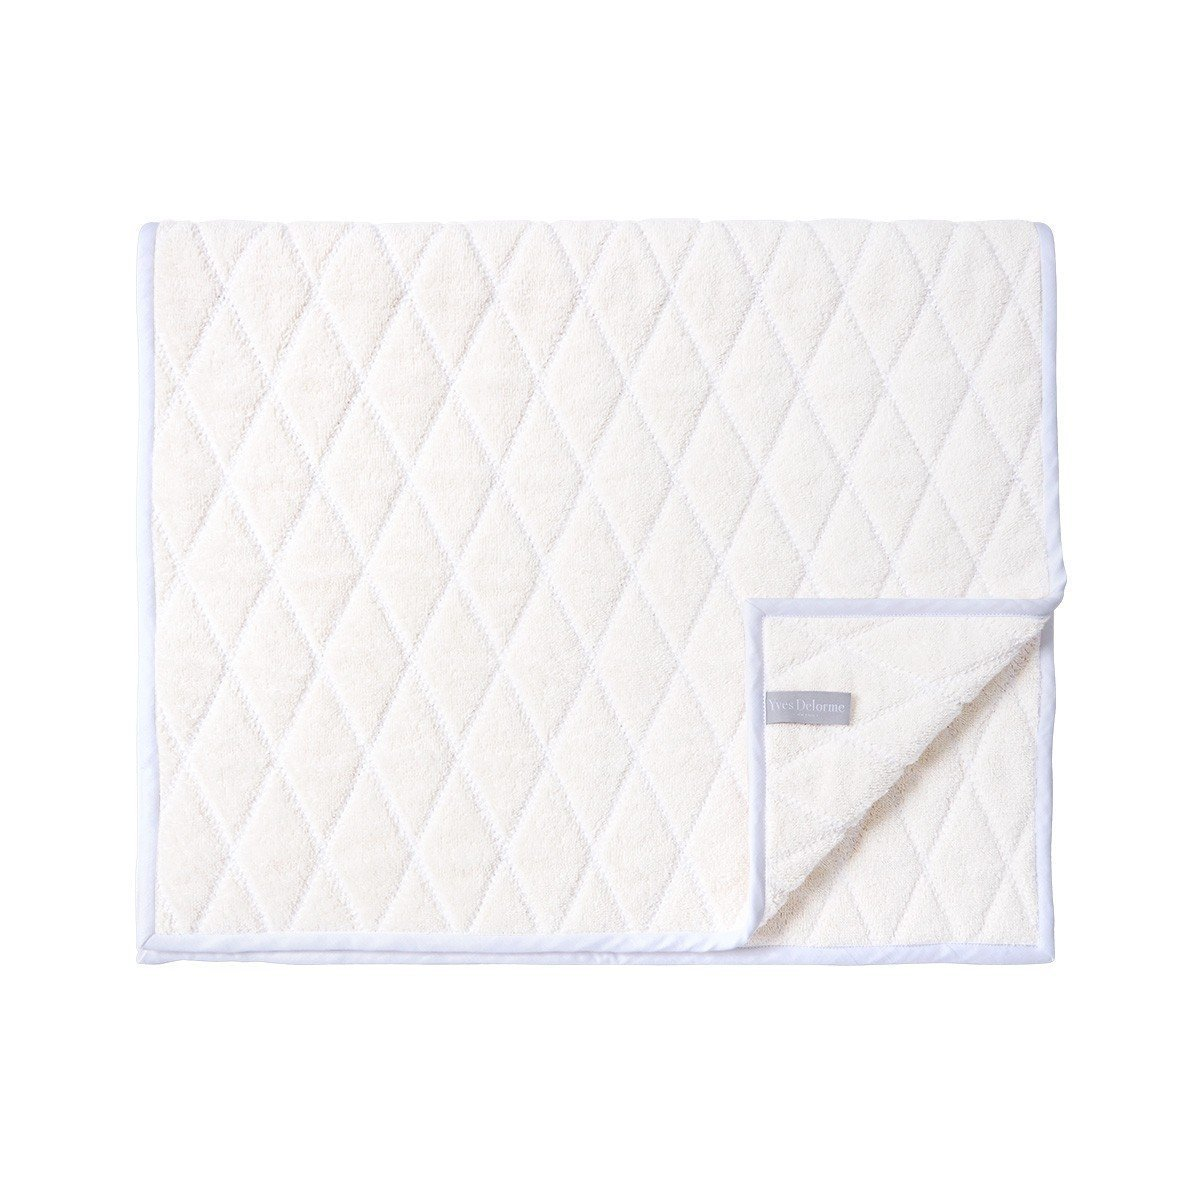 Adagio Perle Bath Collection by Yves Delorme | Fig Linens - Ivory Bath Linen Bath mat